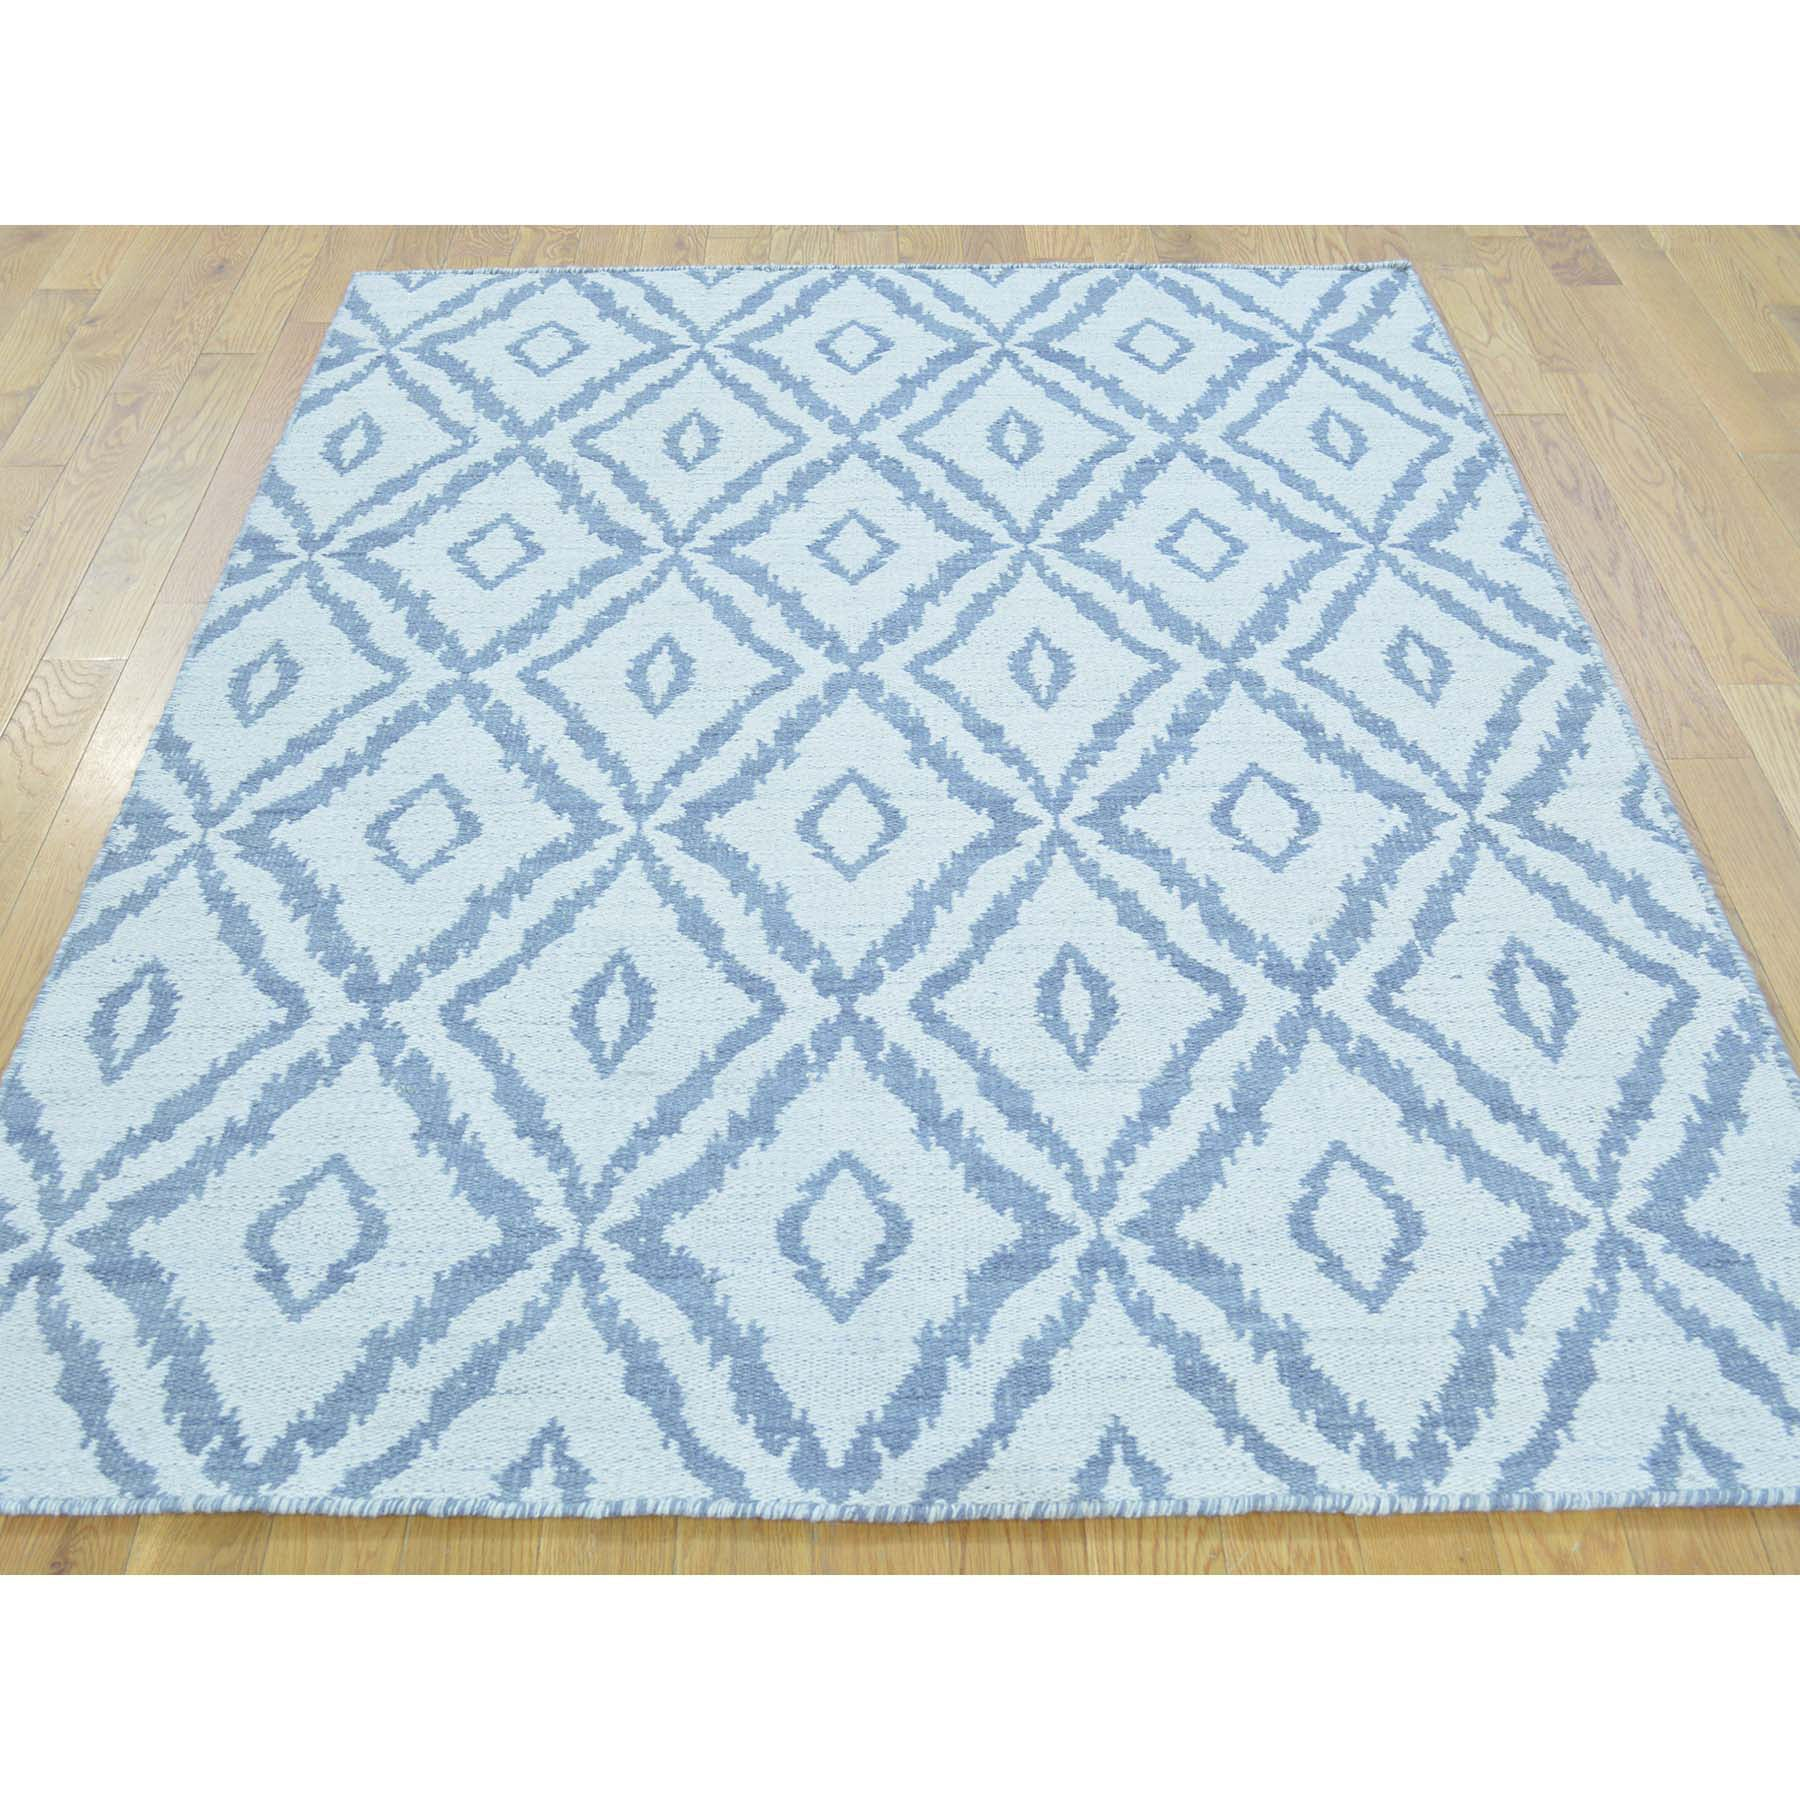 "Handmade Flat Weave Rectangle Rug > Design# SH29821 > Size: 4'-3"" x 6'-0"" [ONLINE ONLY]"